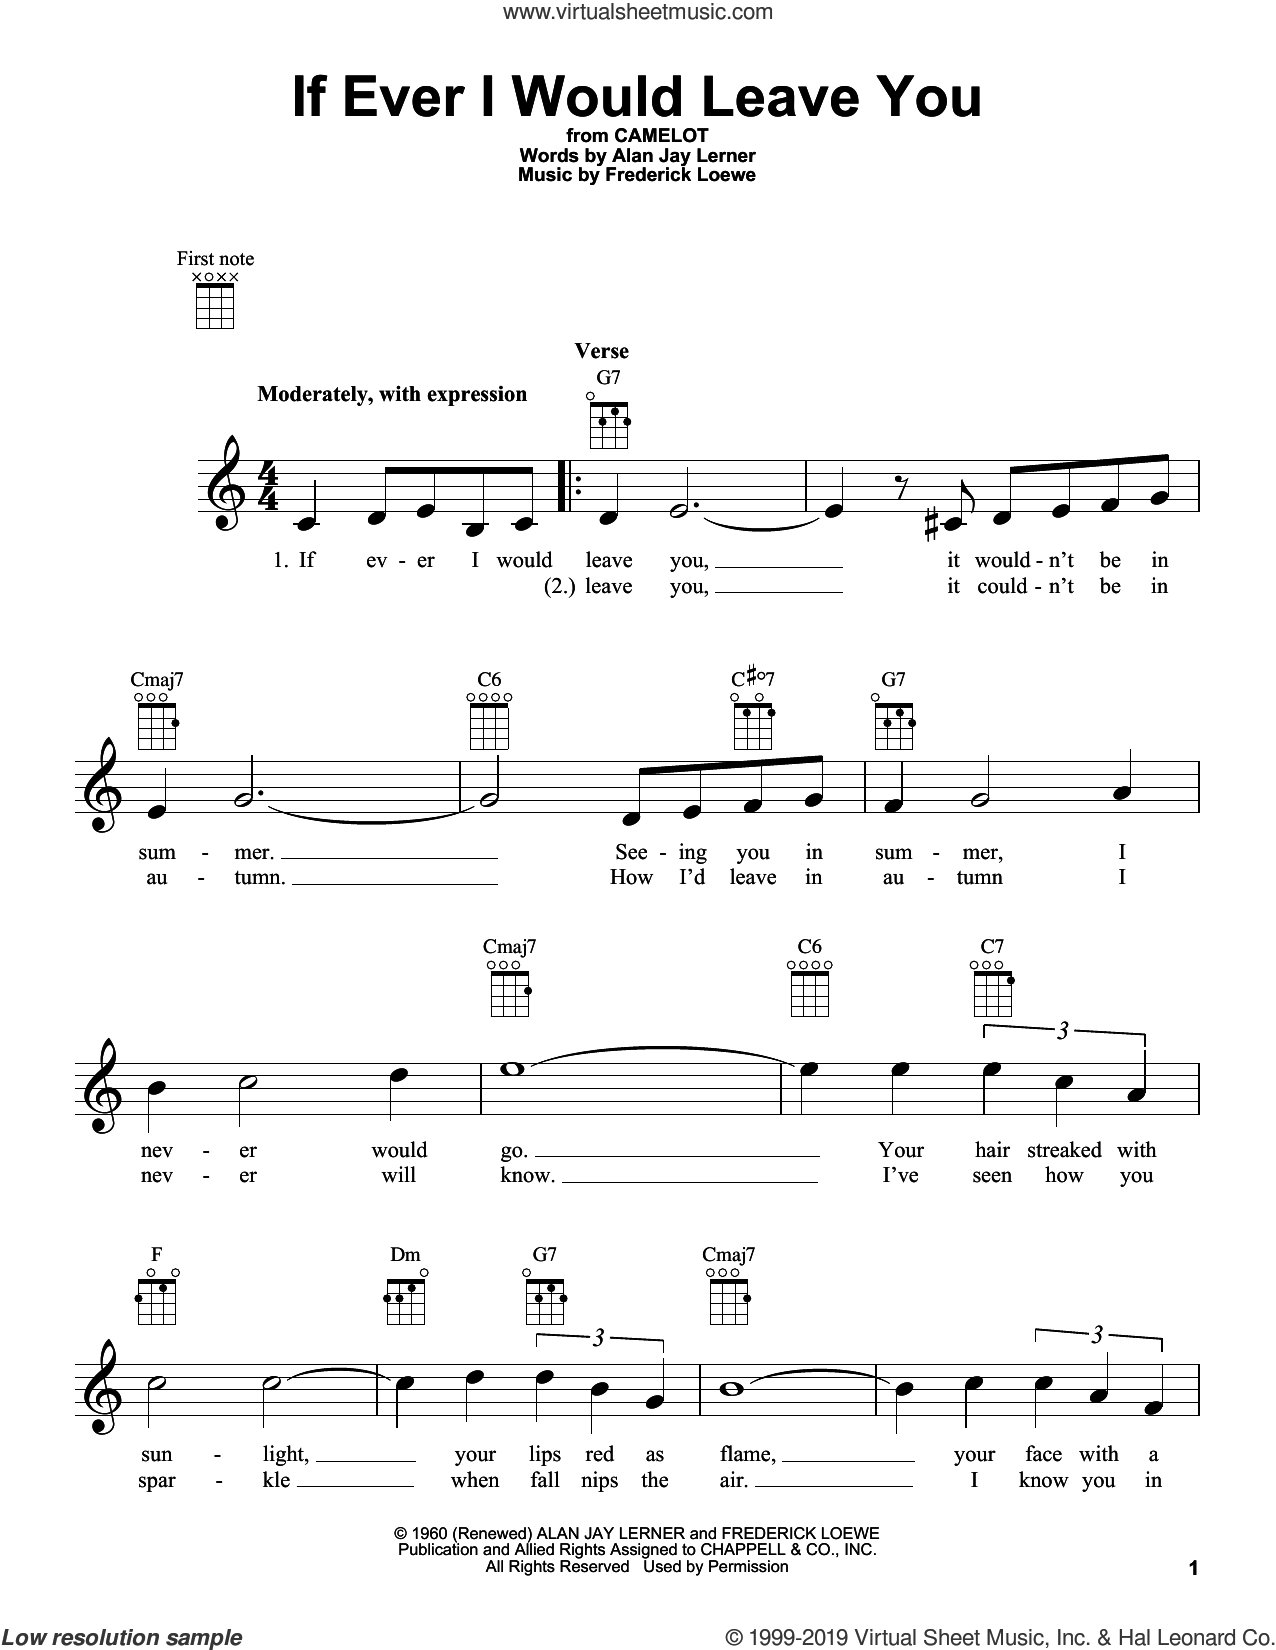 If Ever I Would Leave You sheet music for ukulele by Frederick Loewe and Alan Jay Lerner, intermediate skill level